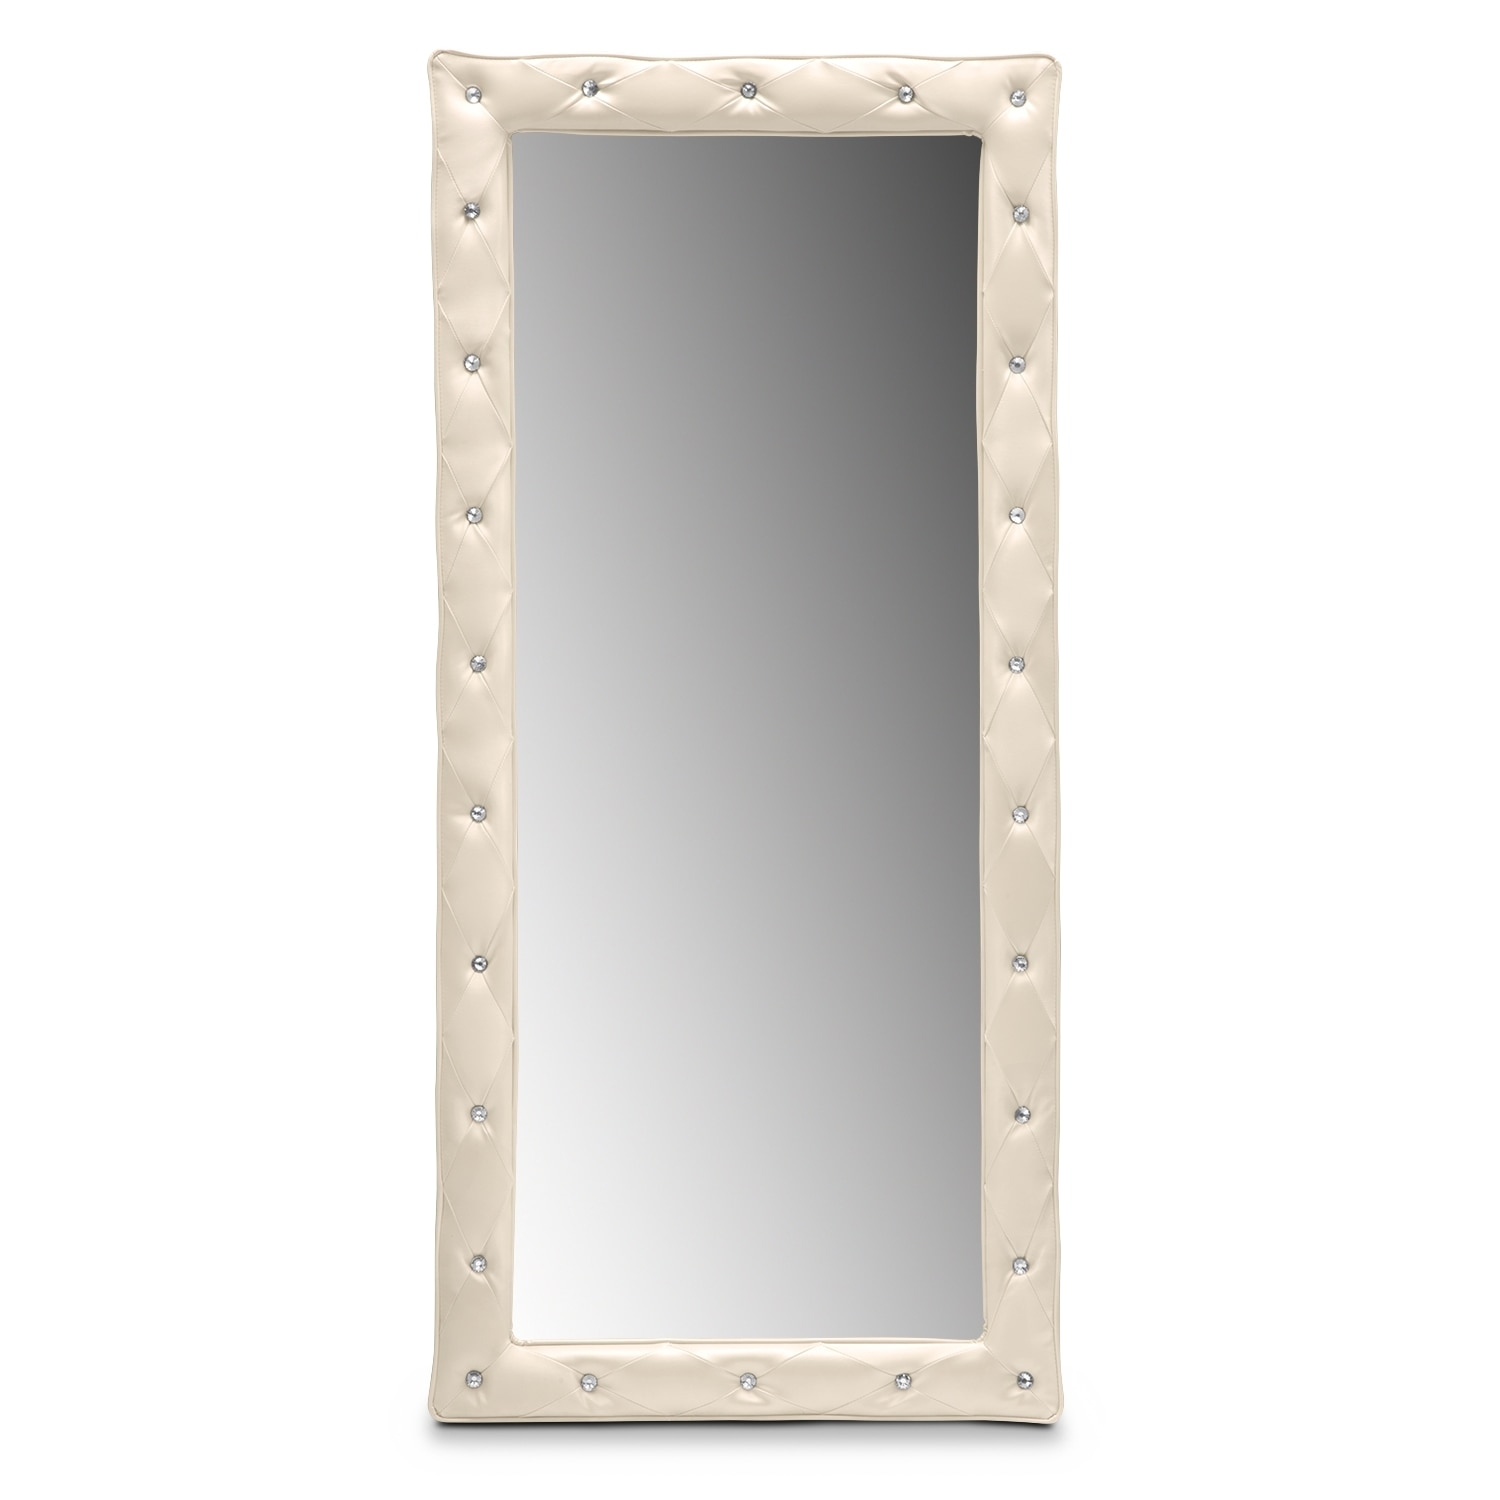 Wall Floor Mirrors Bedroom Accents Value City Furniture Regarding Bling Floor Mirror (Image 14 of 15)